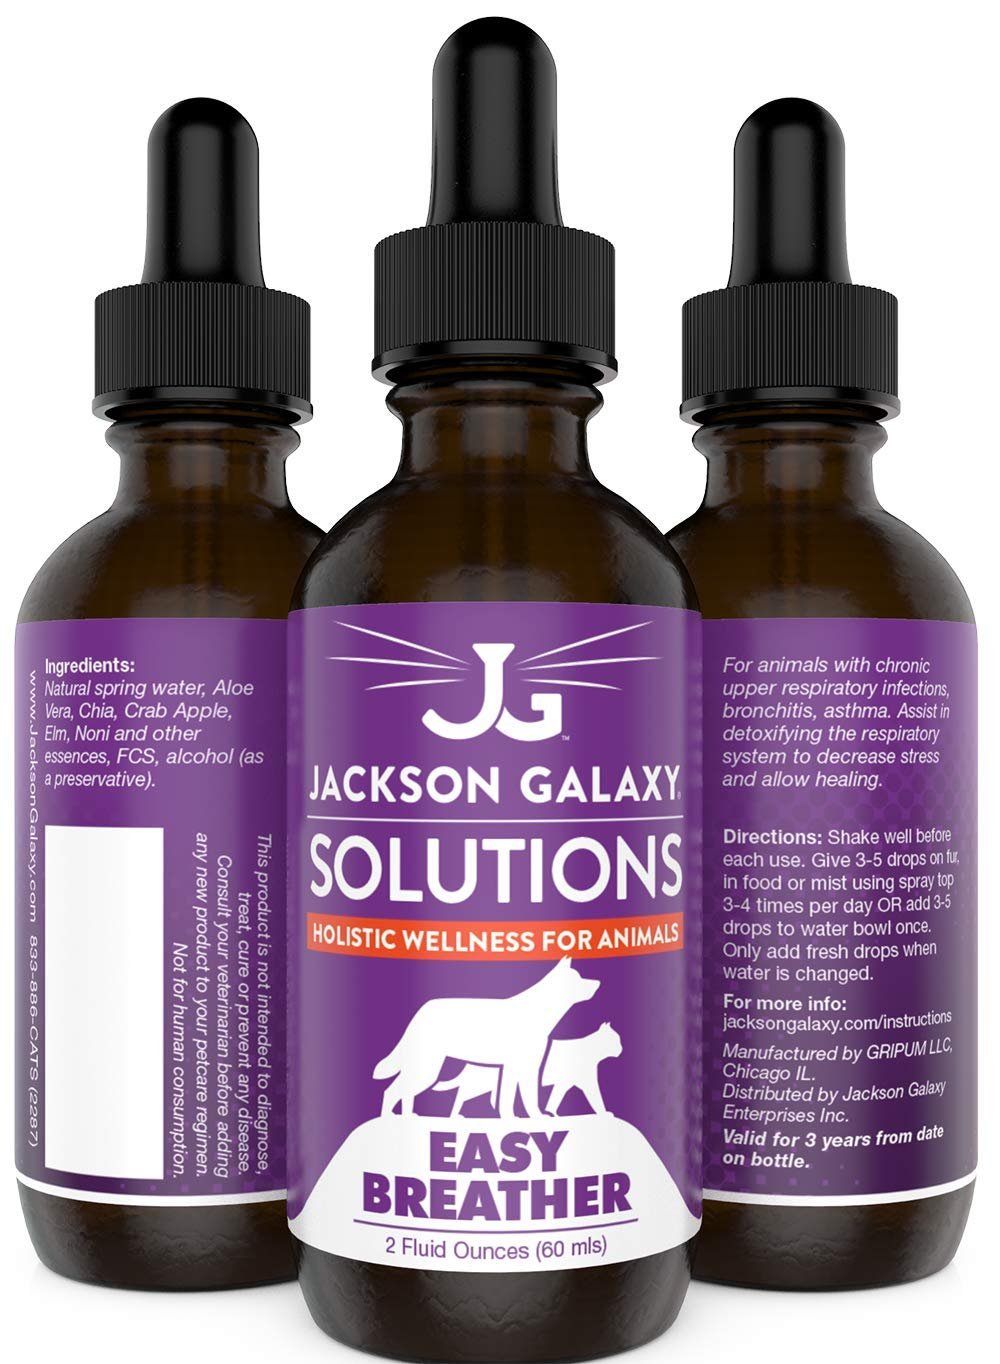 Jackson Galaxy: Easy Breather (2 oz.) - Pet Solution - Detoxify and Discharge Toxins - Can Aid with Respiratory Issues (Allergies, Asthma,etc.) - All-Natural Formula - Reiki Energy by Jackson Galaxy